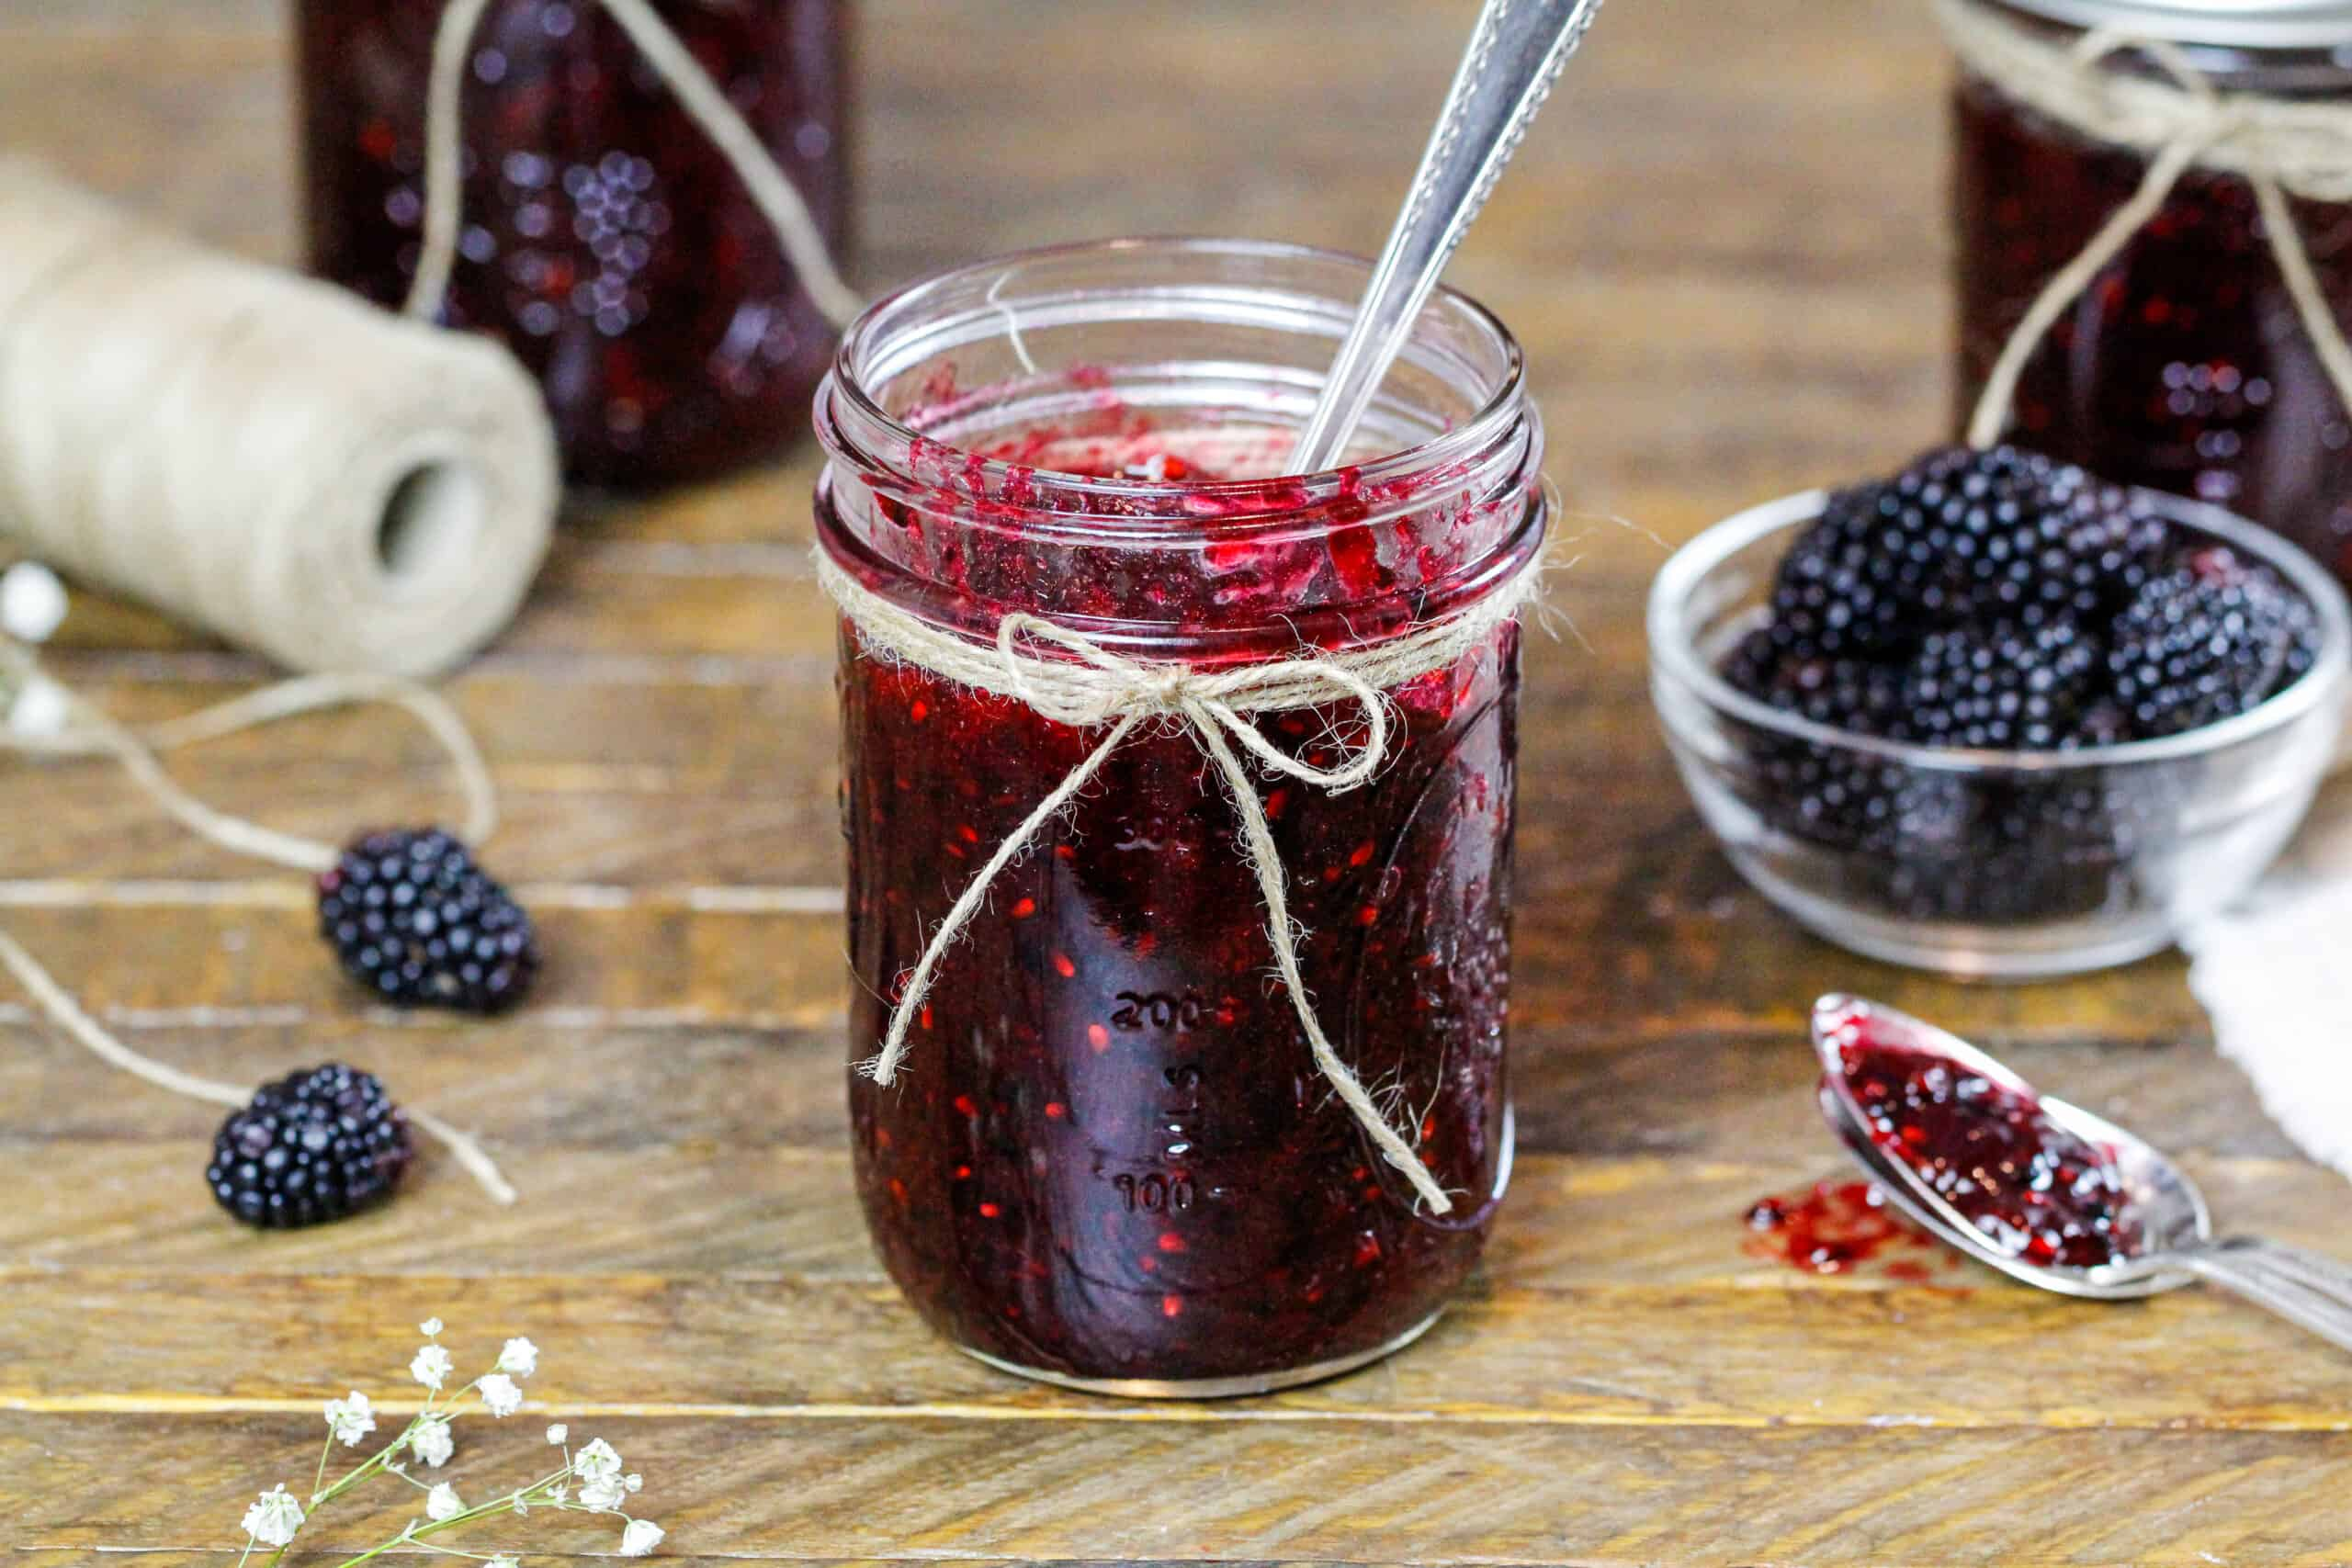 image of blackberry freezer jam that has set and is ready to be eaten